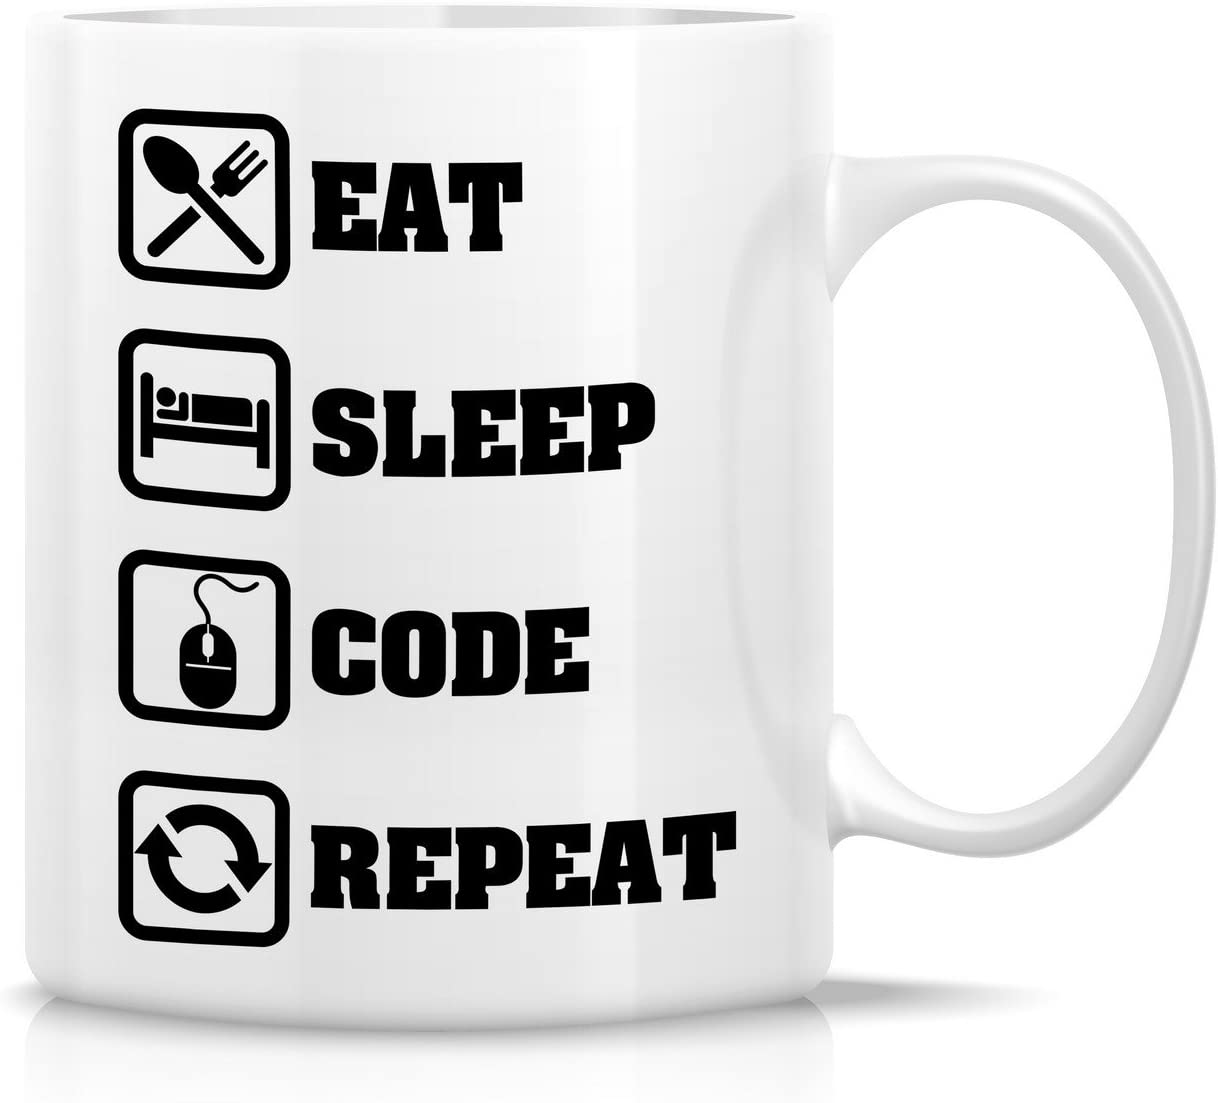 Retreez Funny Mug - Eat Sleep Code Repeat Programmer Software Engineer 11 Oz Ceramic Coffee Mugs - Funny, Sarcasm, Sarcastic, Inspirational birthday gifts for friends, coworkers, siblings, dad, mom.